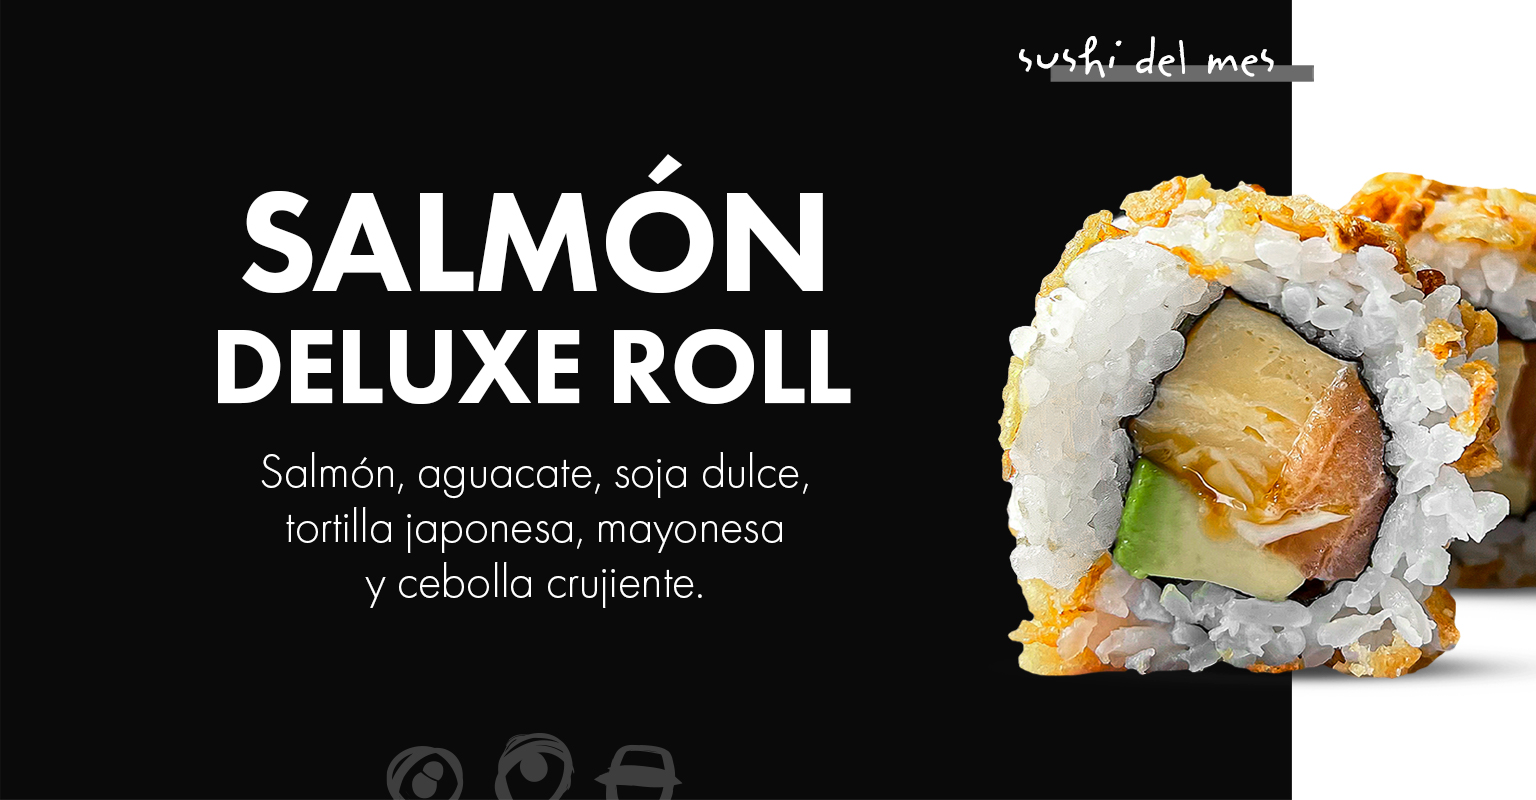 SUSHI DEL MES: SALMÓN DELUXE ROLL